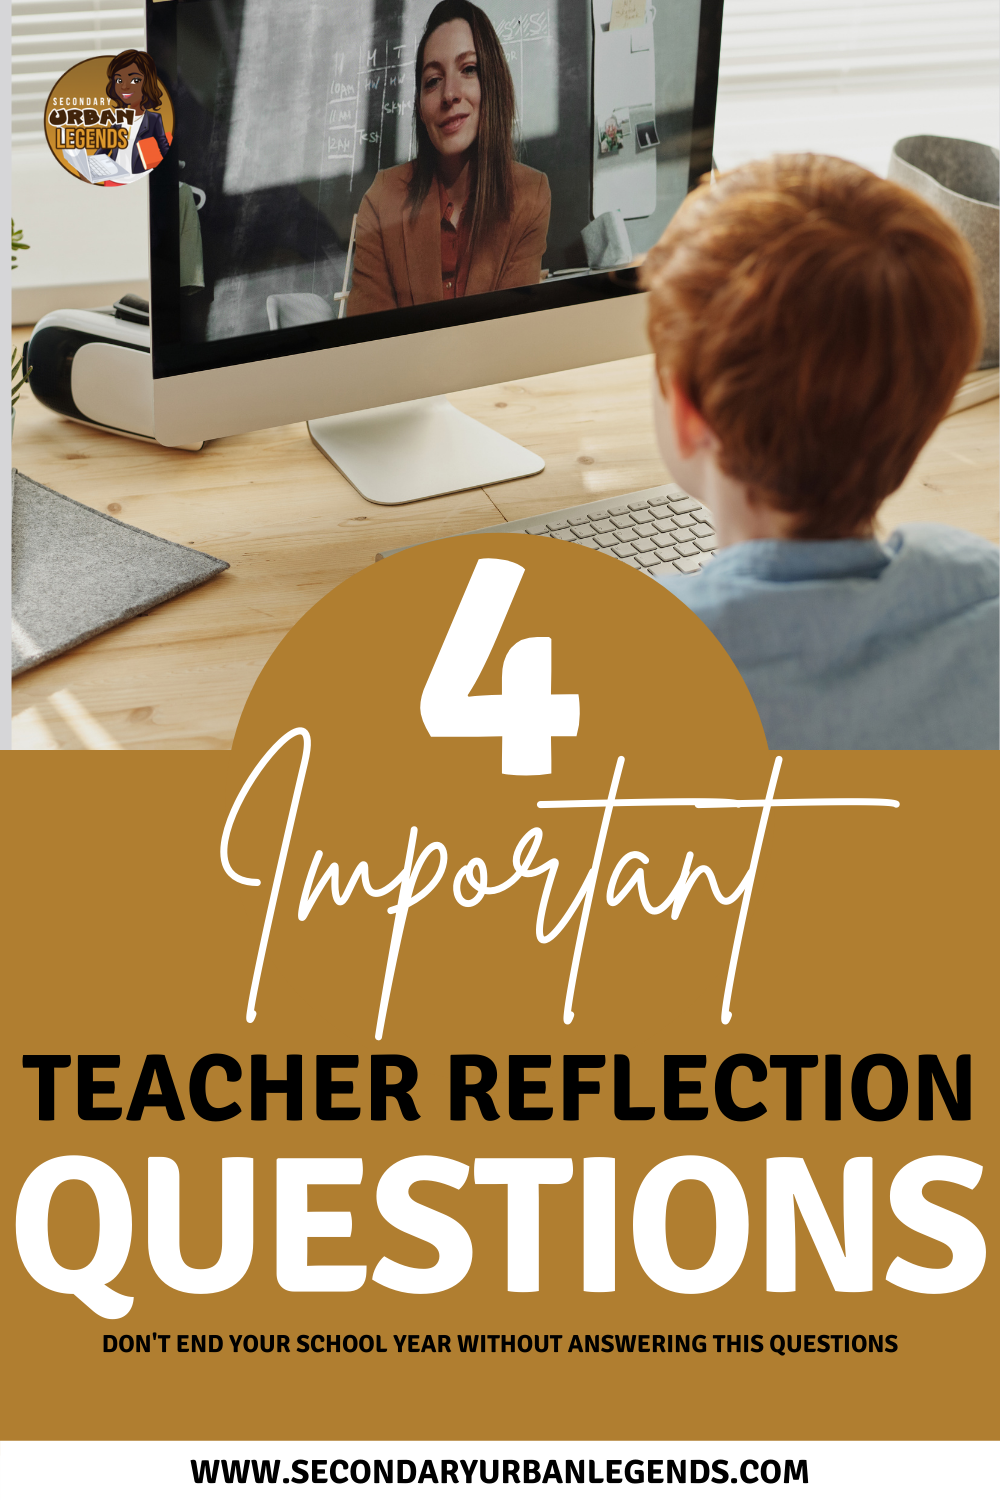 reflection questions to ask yourself at the end of every school year to ensure you have a better new year